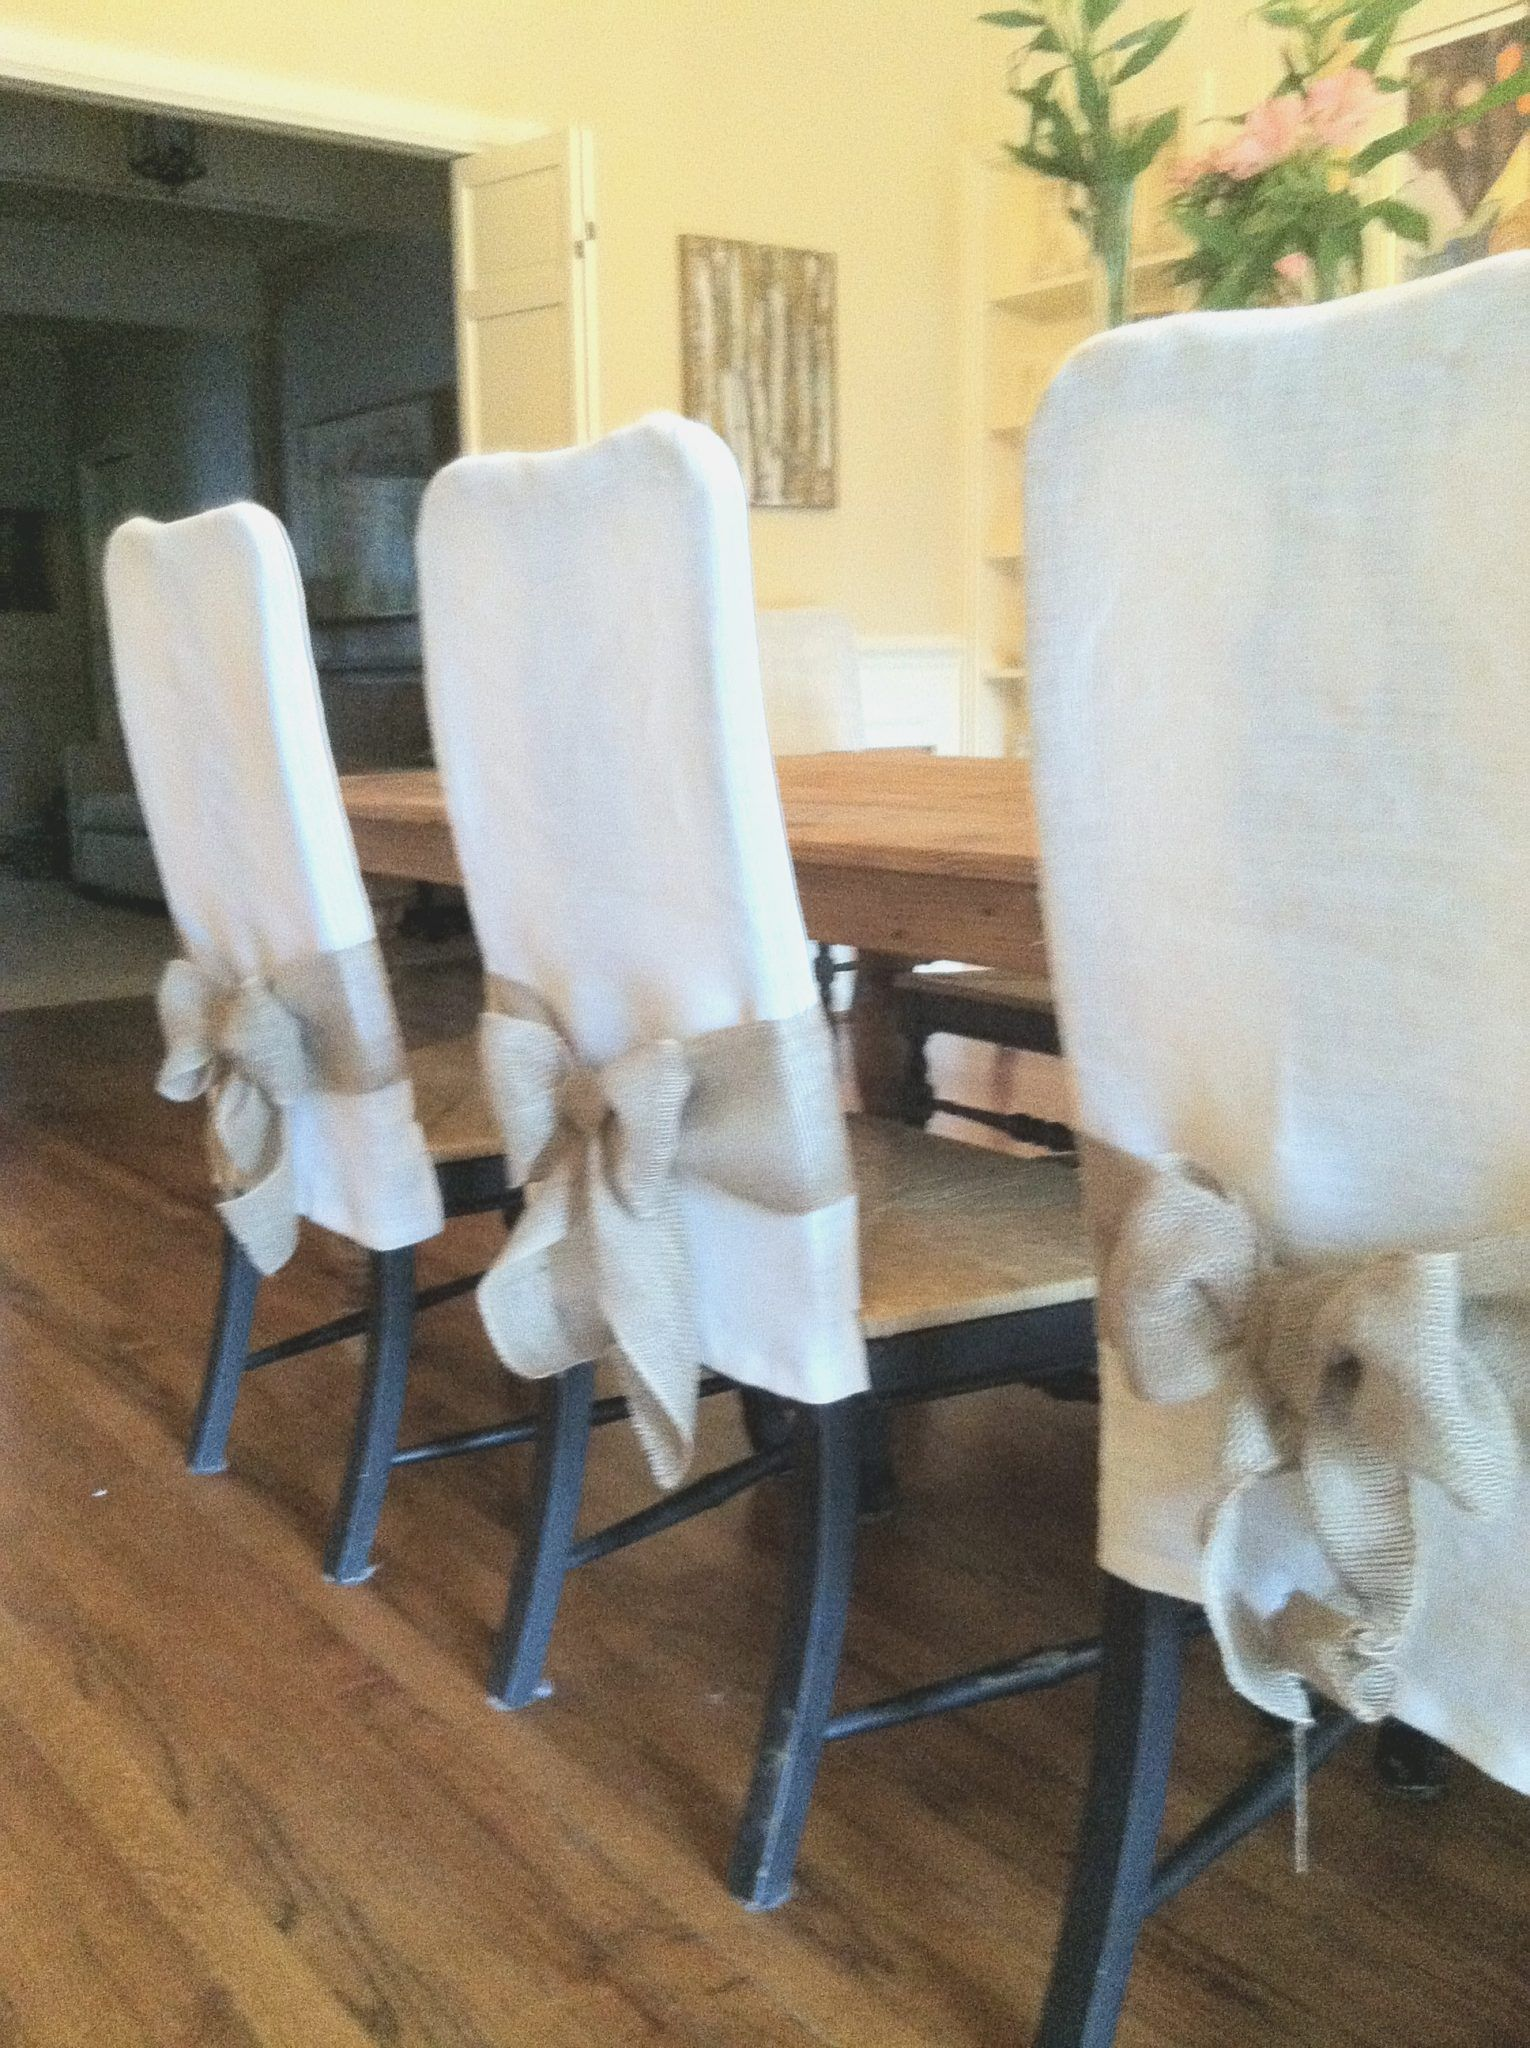 Seat Covers For Kitchen Chairs Clear Seat Covers For Kitchen Chairs Diy Seat Covers Fo Dining Room Chair Slipcovers Dining Room Chair Covers Diy Dining Room